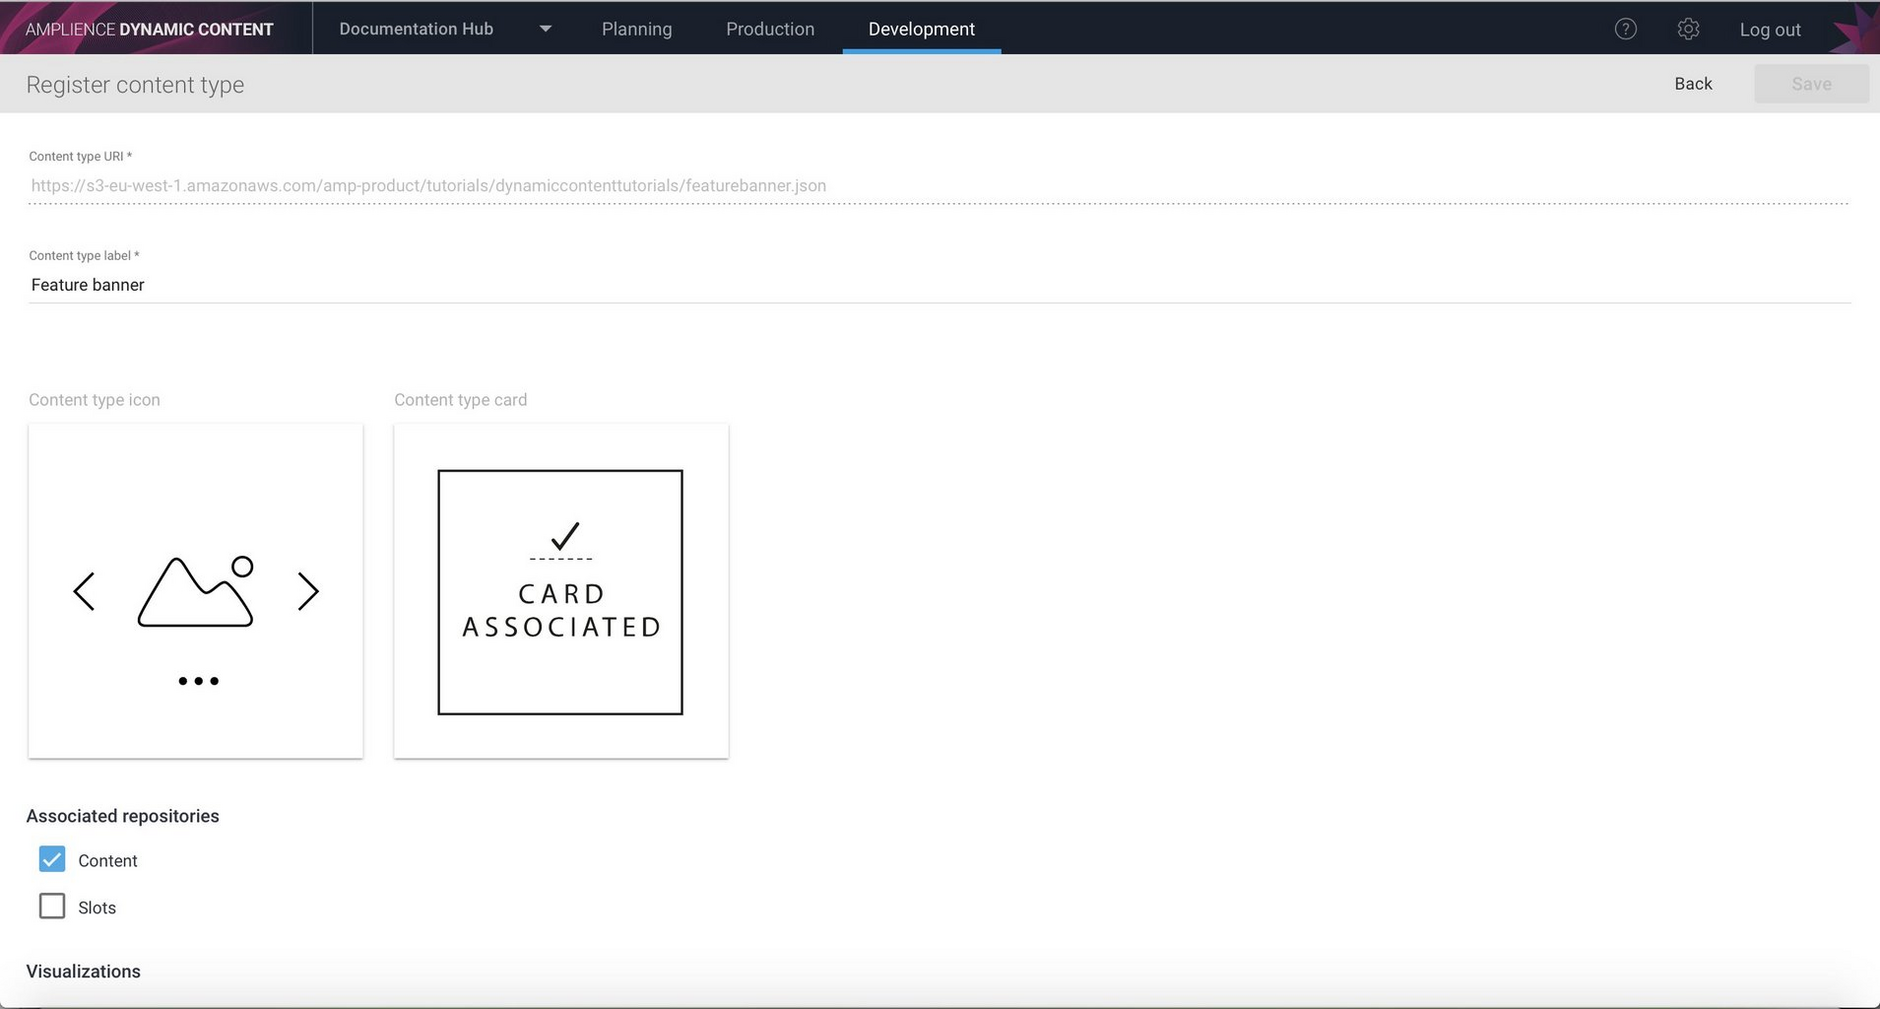 The content type already has an icon, card and visualization